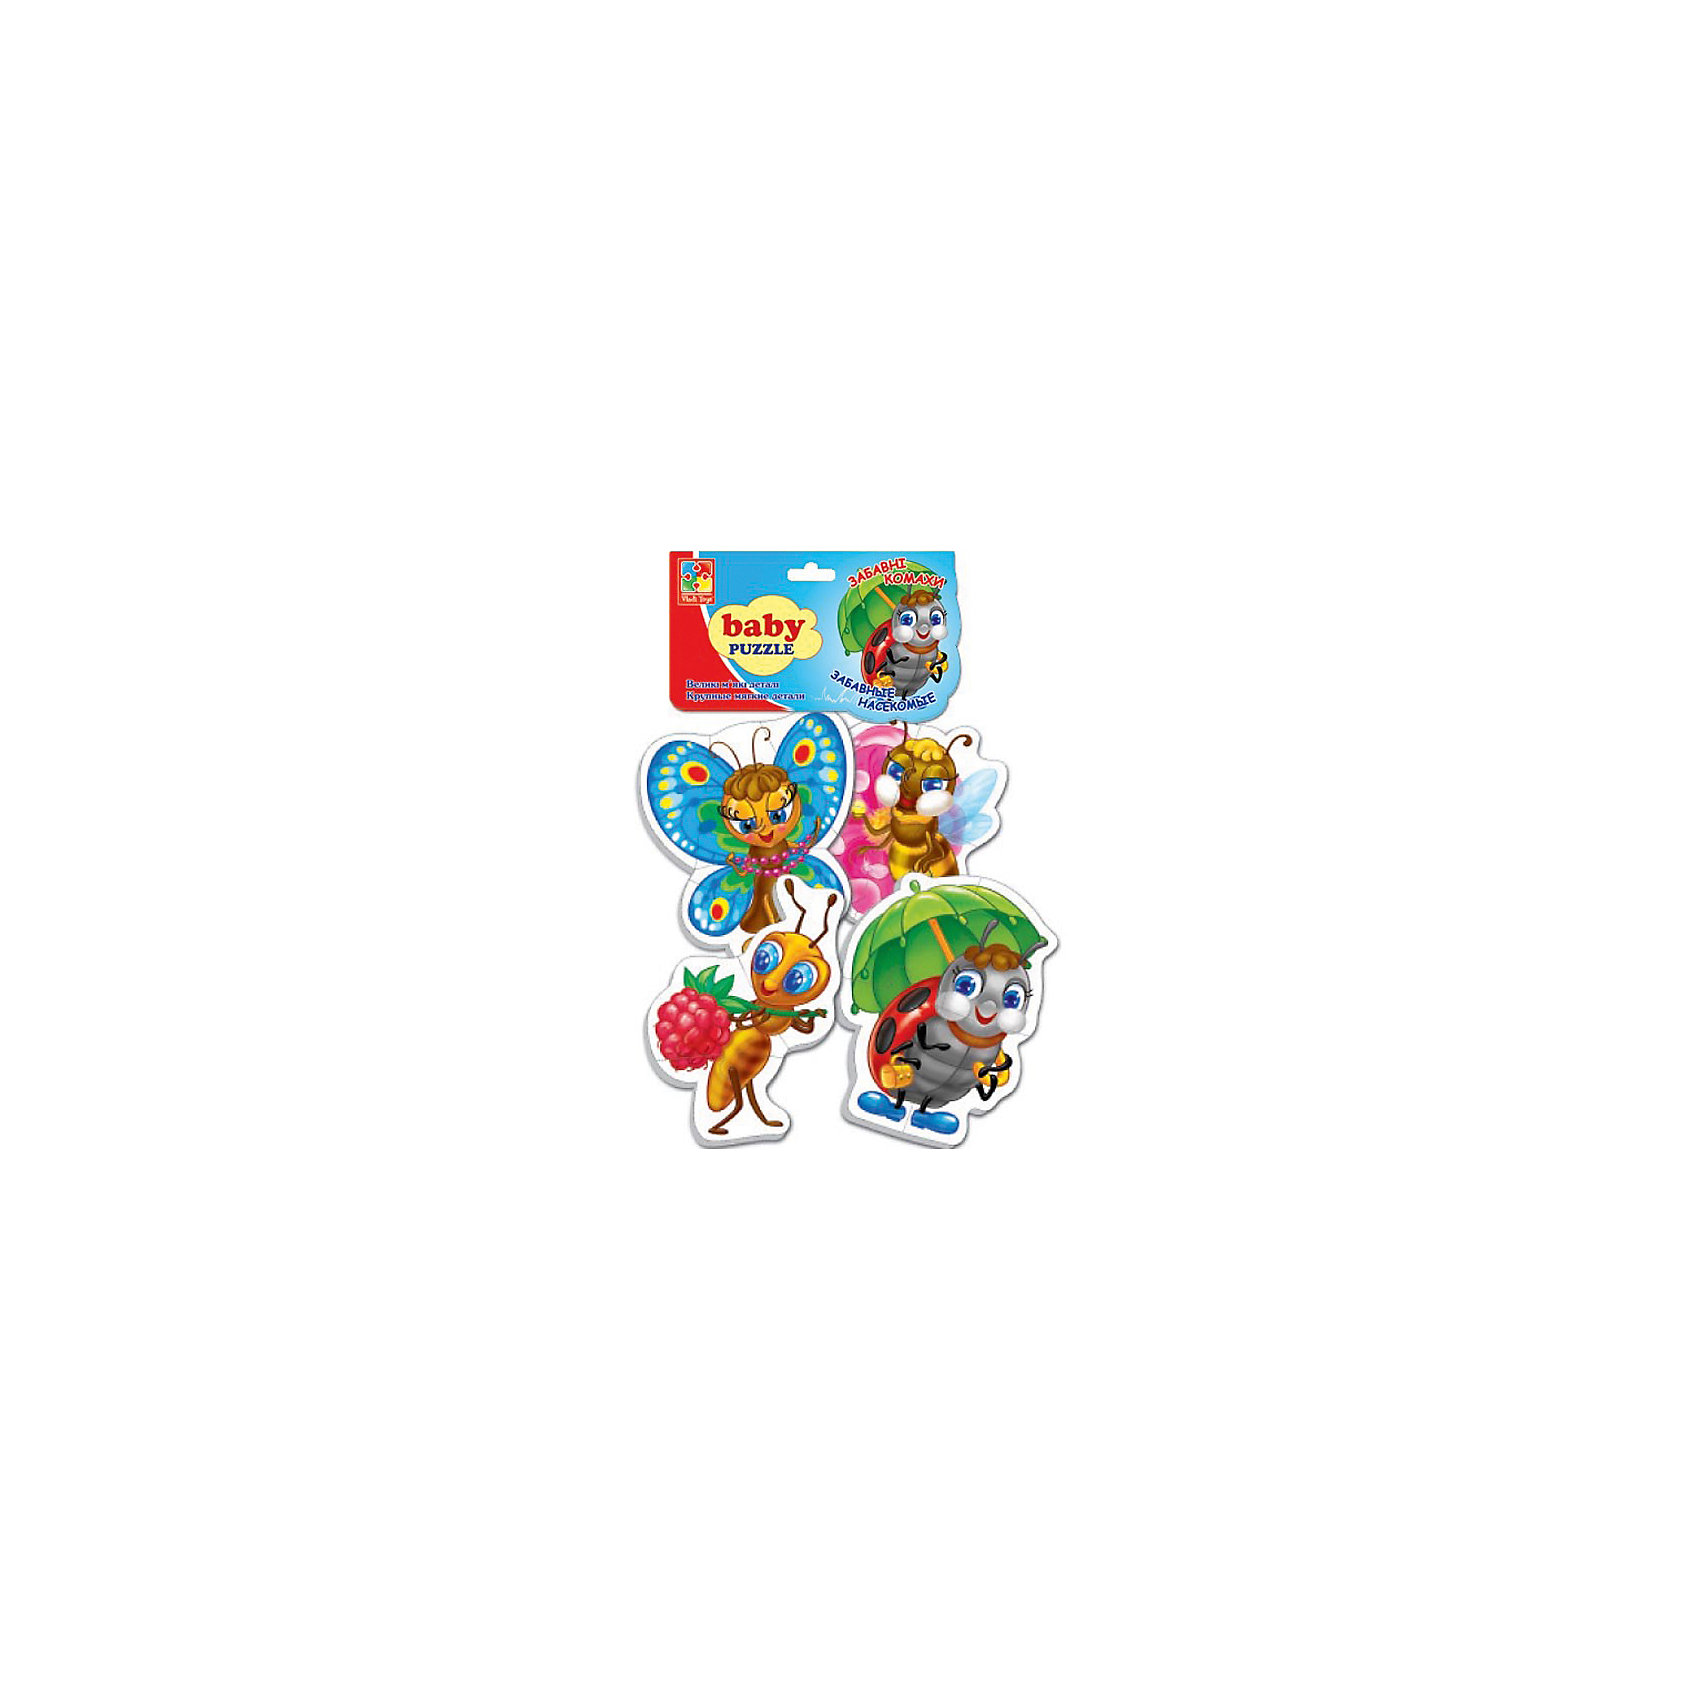 Vladi Toys Мягкие пазлы Насекомые, Vladi Toys пазлы vladi toys пазлы мягкие baby puzzle сказки репка